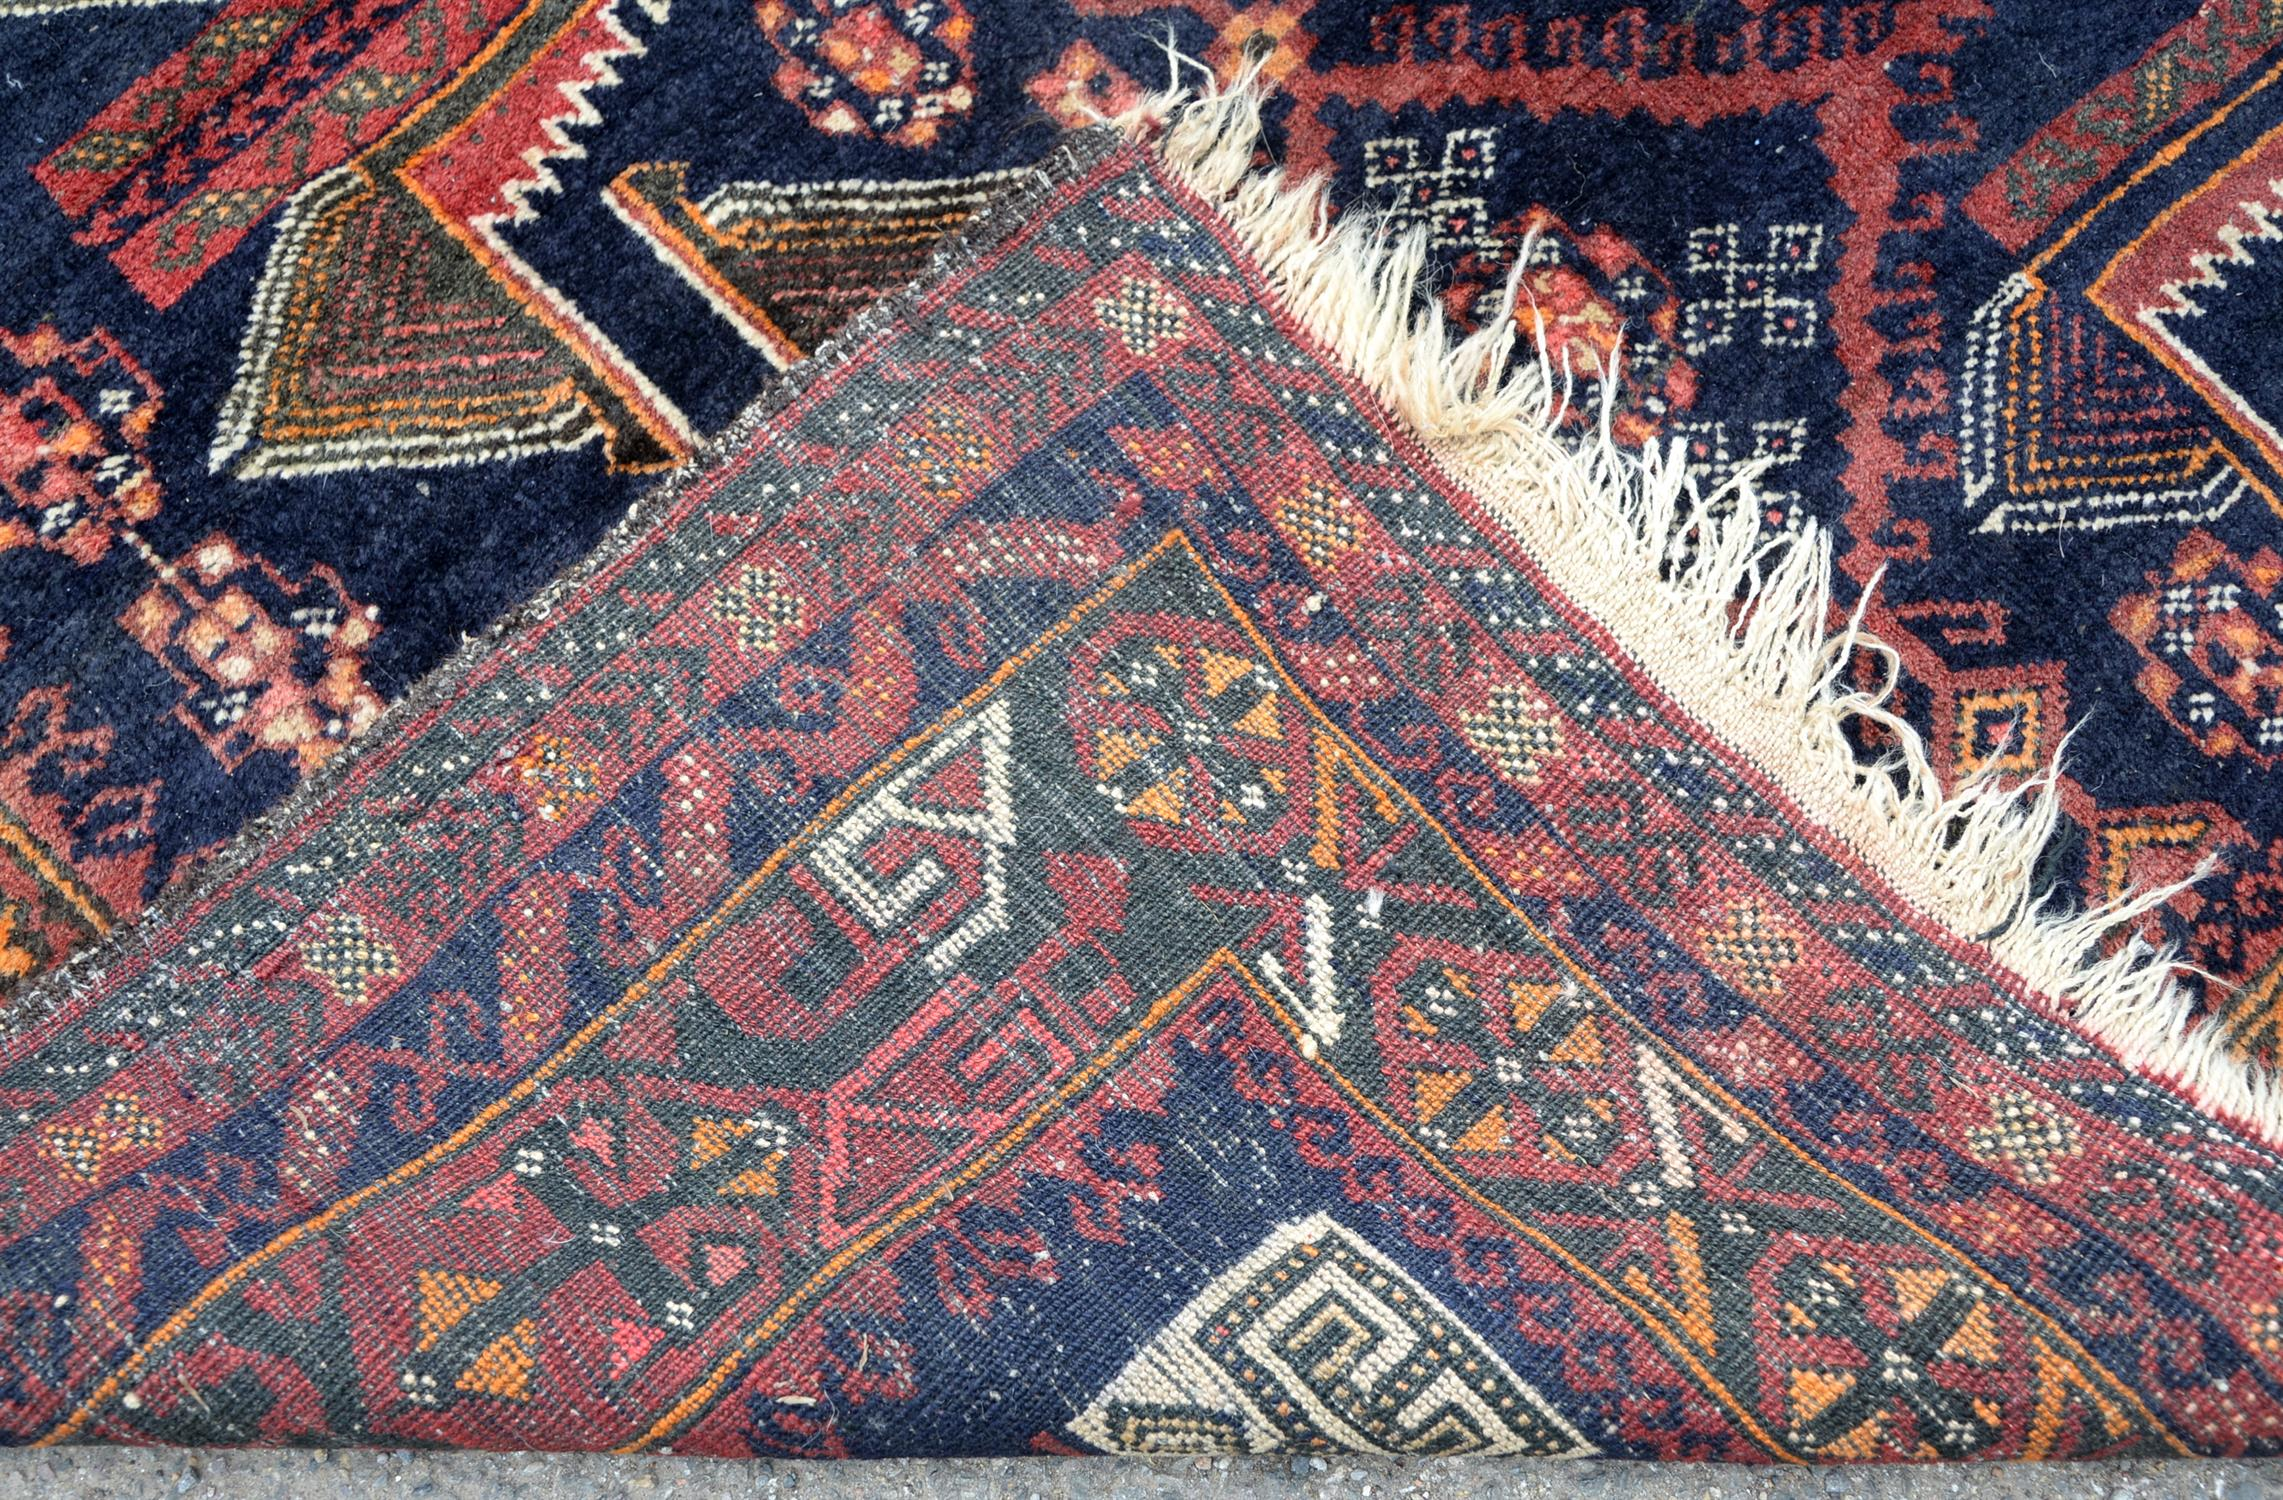 Pakistan rug in the Afghan style, having stylised motifs echoing the war in Afghanistan on a blue - Image 2 of 2